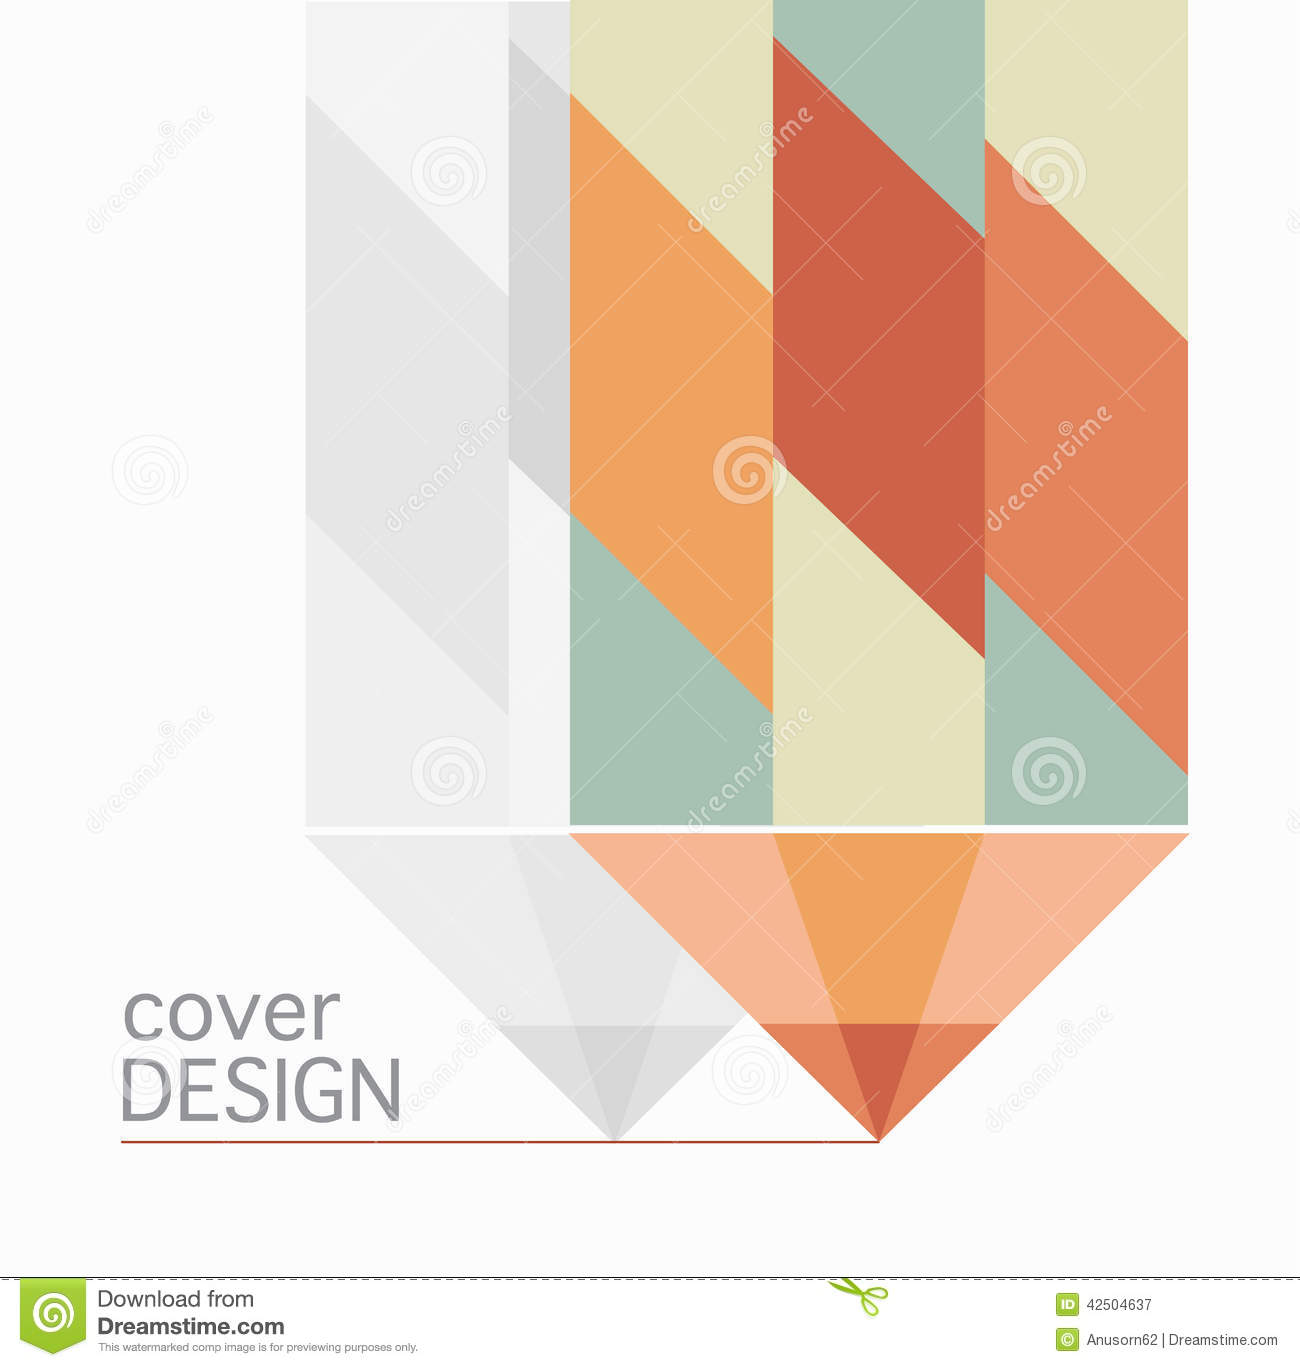 Book Cover Design Vector Download : Book cover annual report colorful pencil design vector